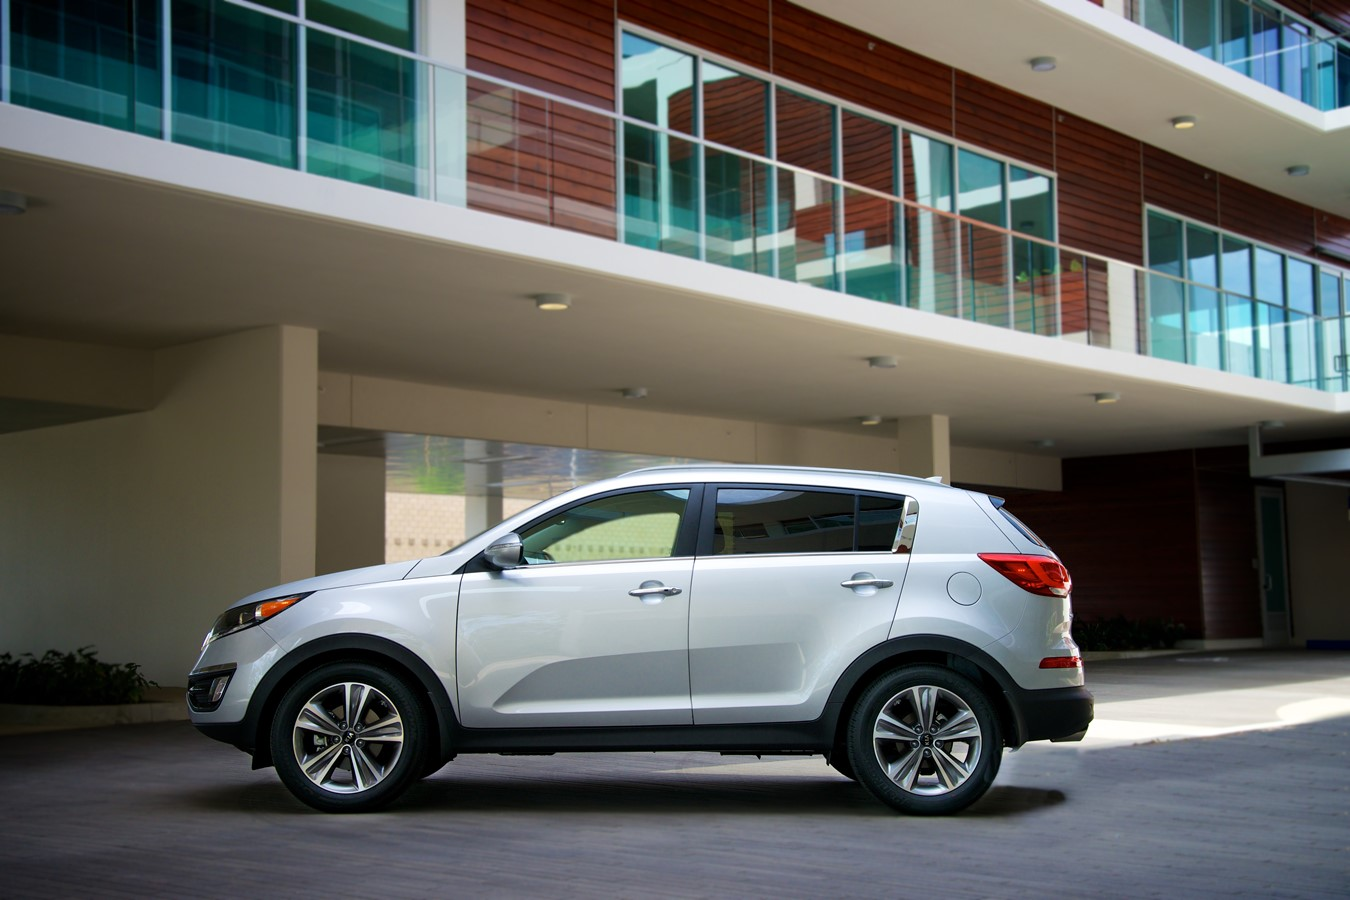 2015 Kia Sportage for sale near South Bend, Indiana